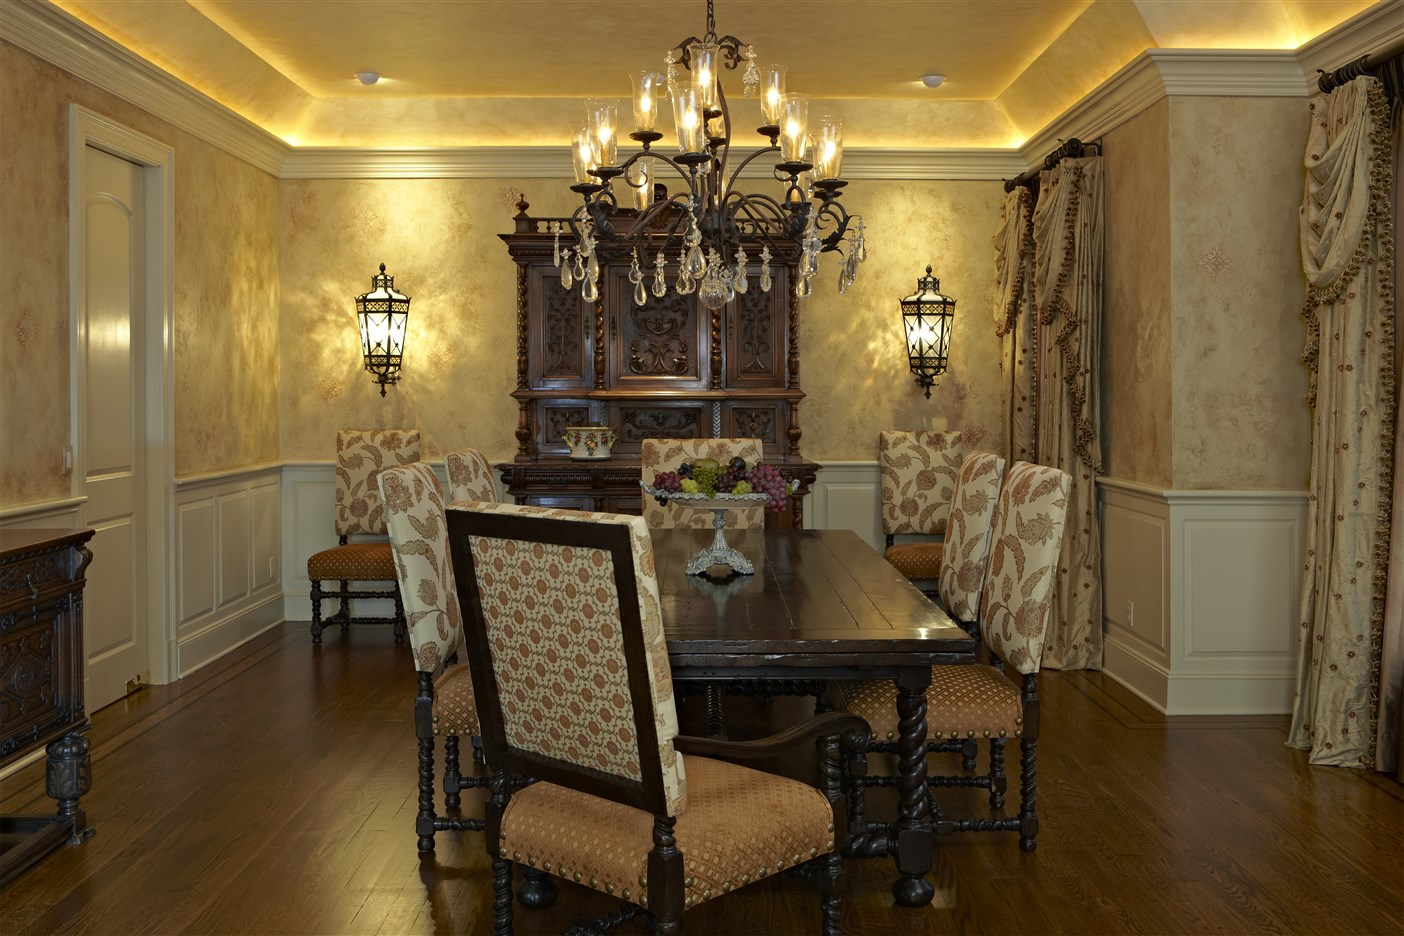 Dining area with wooden table for  eight